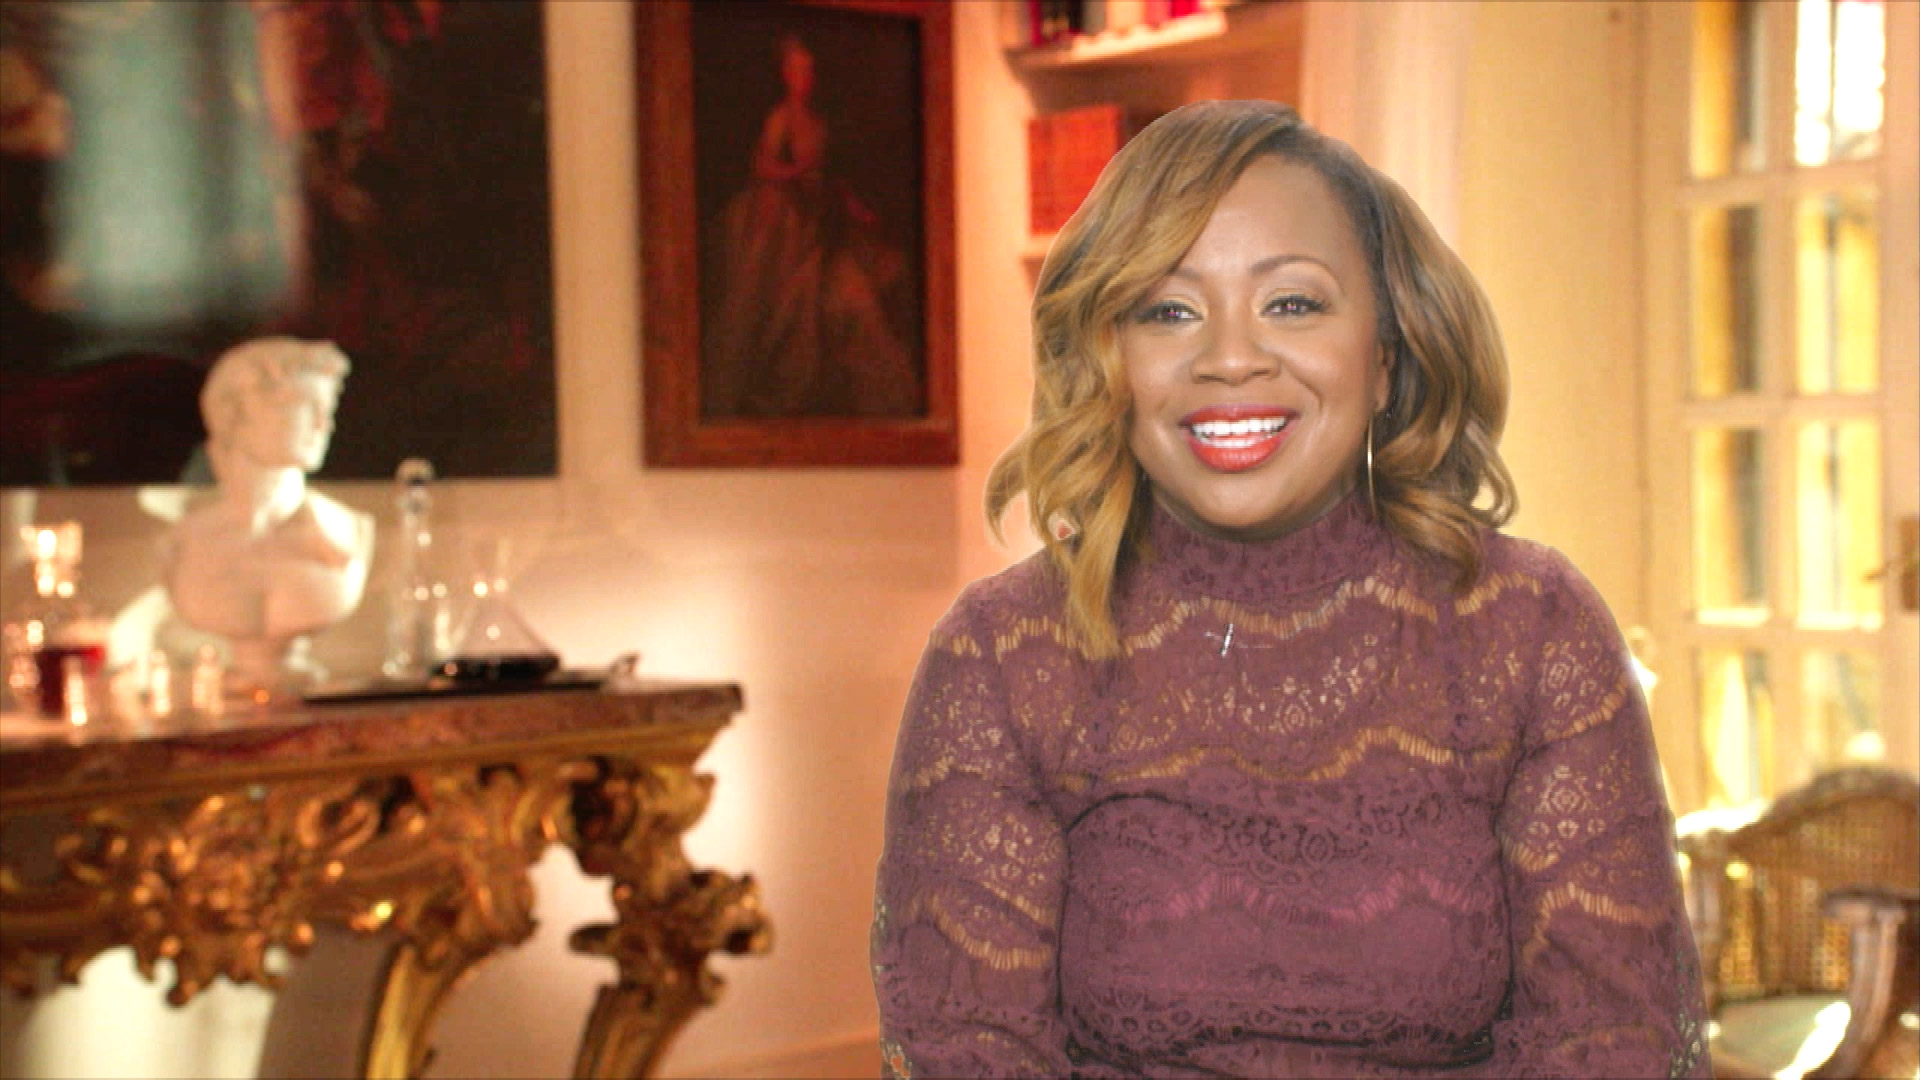 Gina Neely Hasnt Talked To Ex-Husband Pat Neely In Four -8333